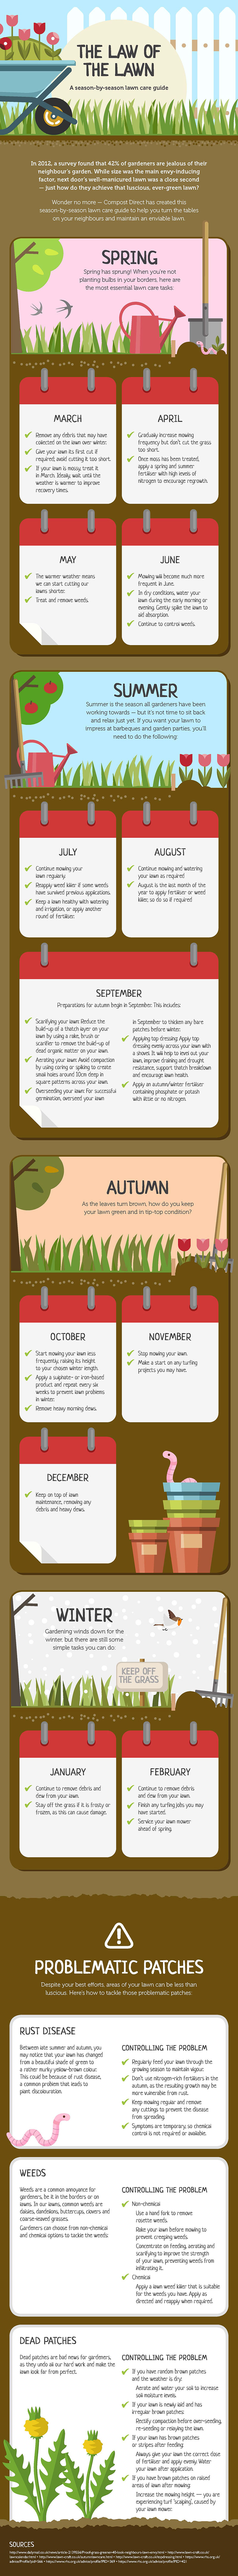 lawn care infographic